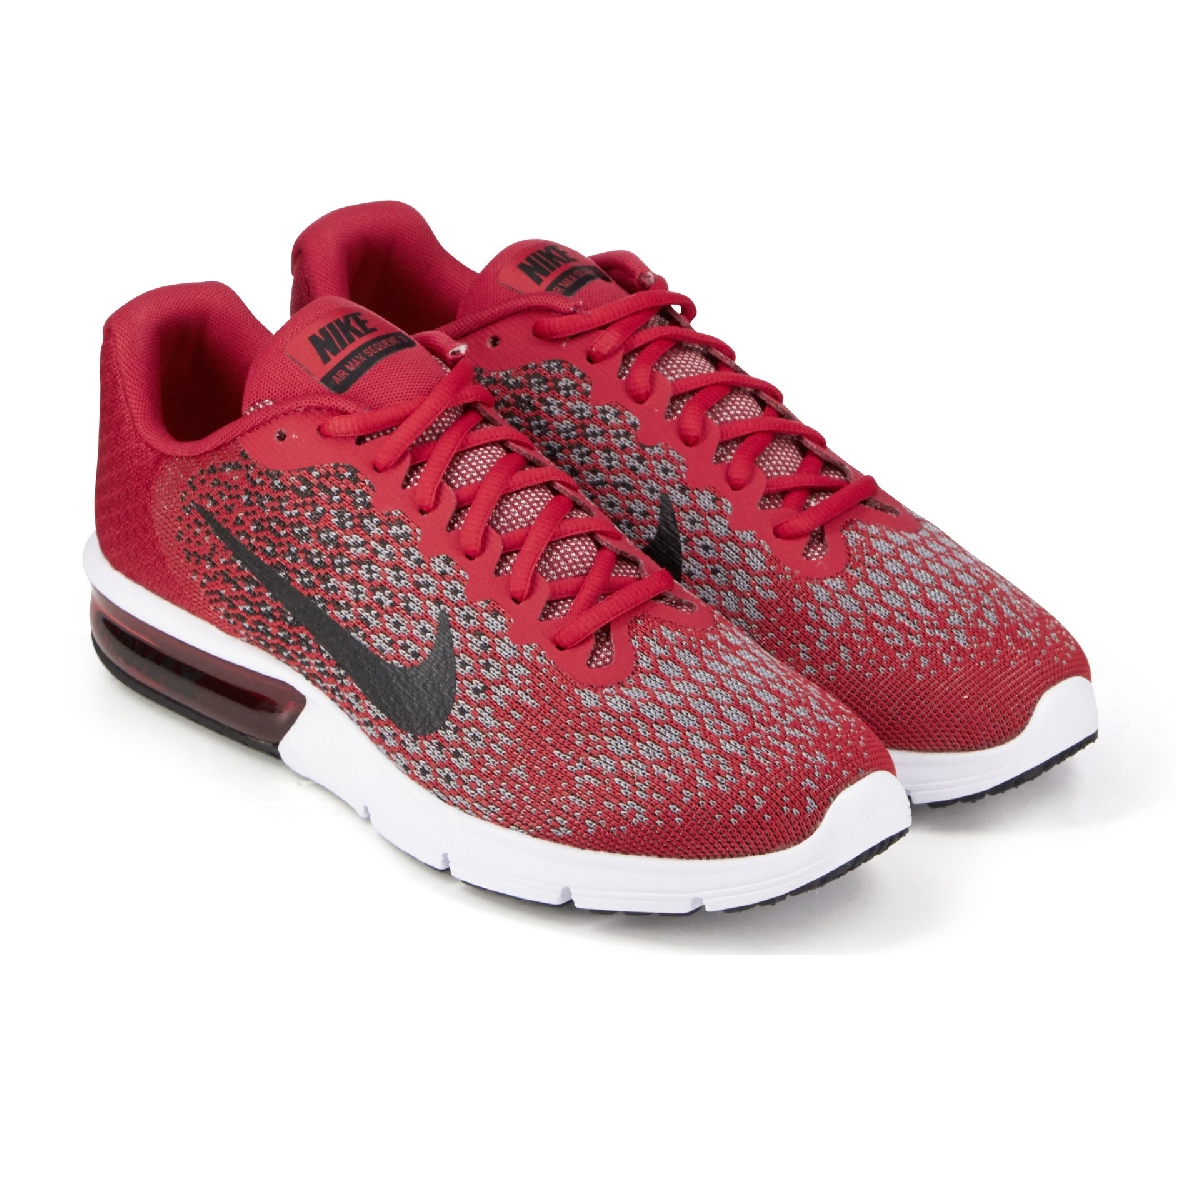 wholesale dealer e14f4 67cd2 Nike Performance AIR MAX SEQUENT 2 Homme Rouge Homme Chaussures - Baskets - Nike  Air Max Sequent 2 Rouge KJGDNIC